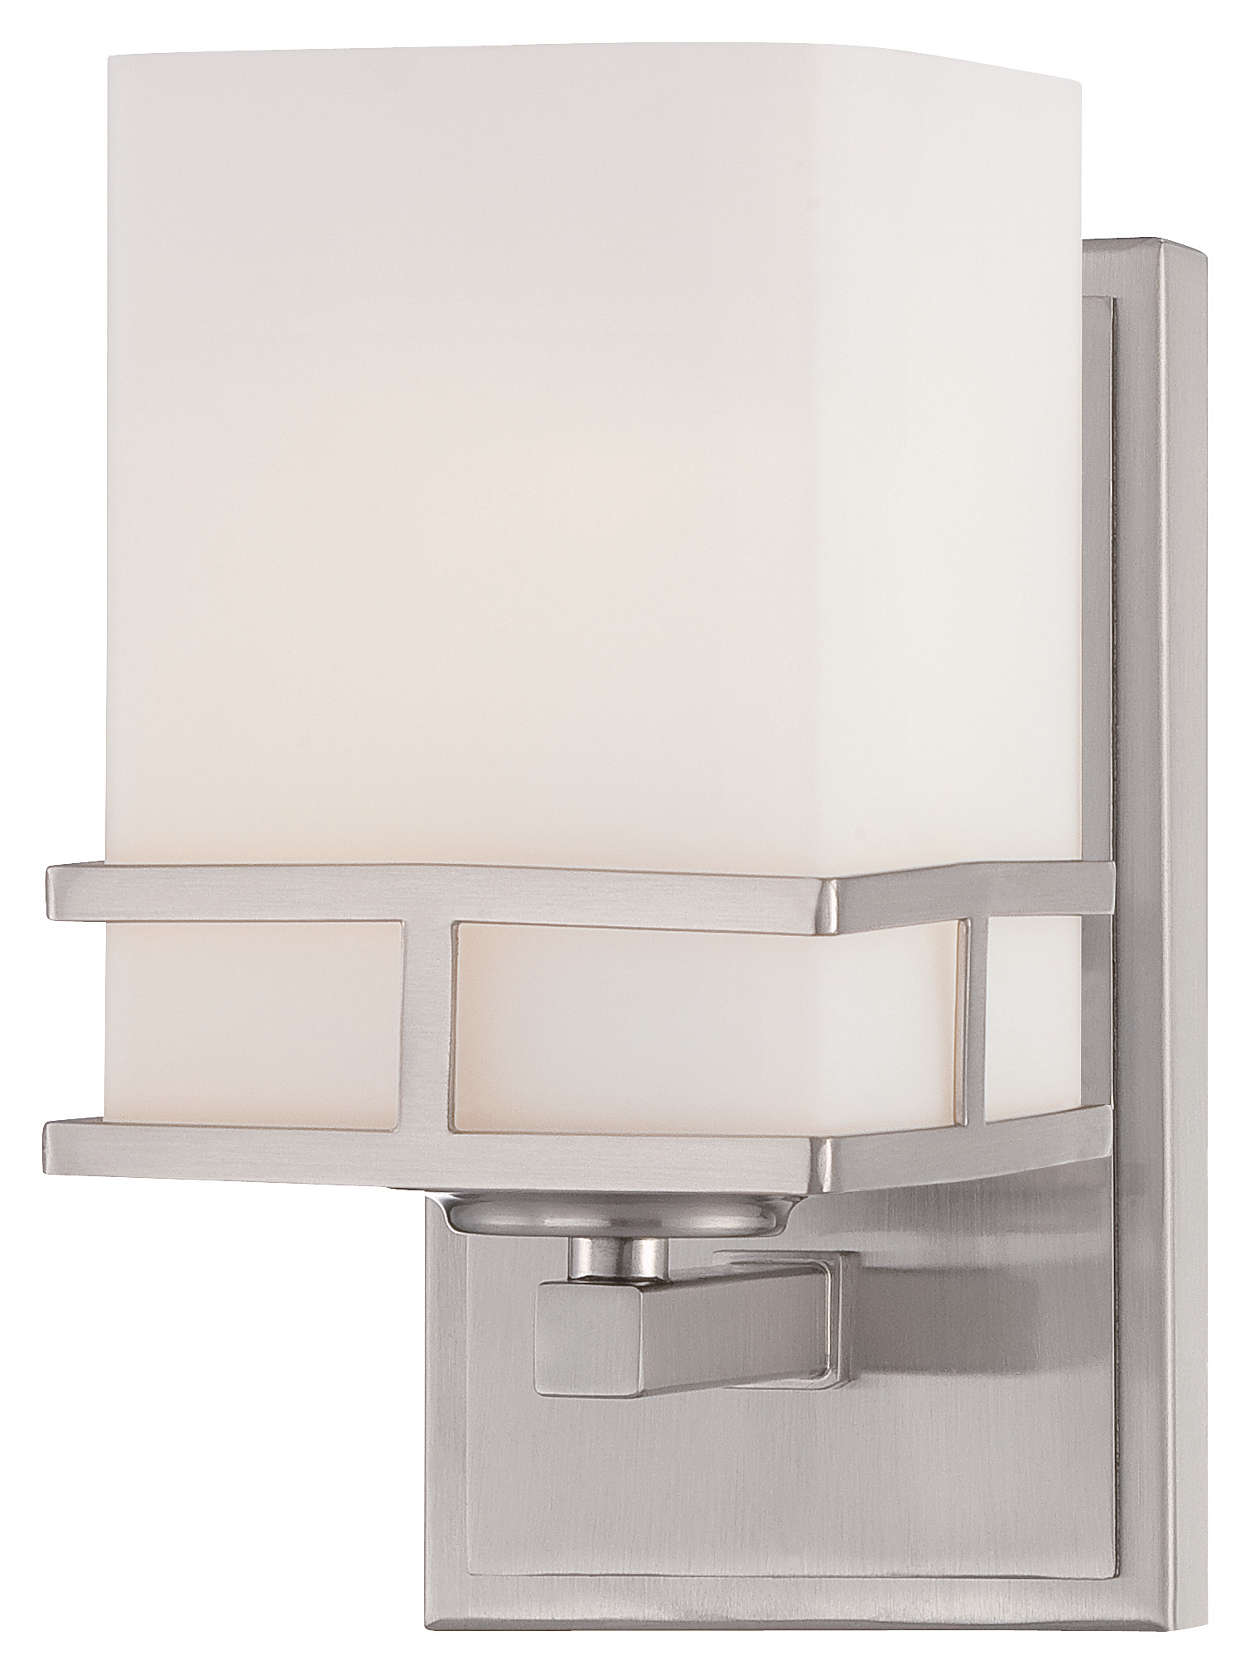 Morris 1-light Bath in Satin Nickel finish